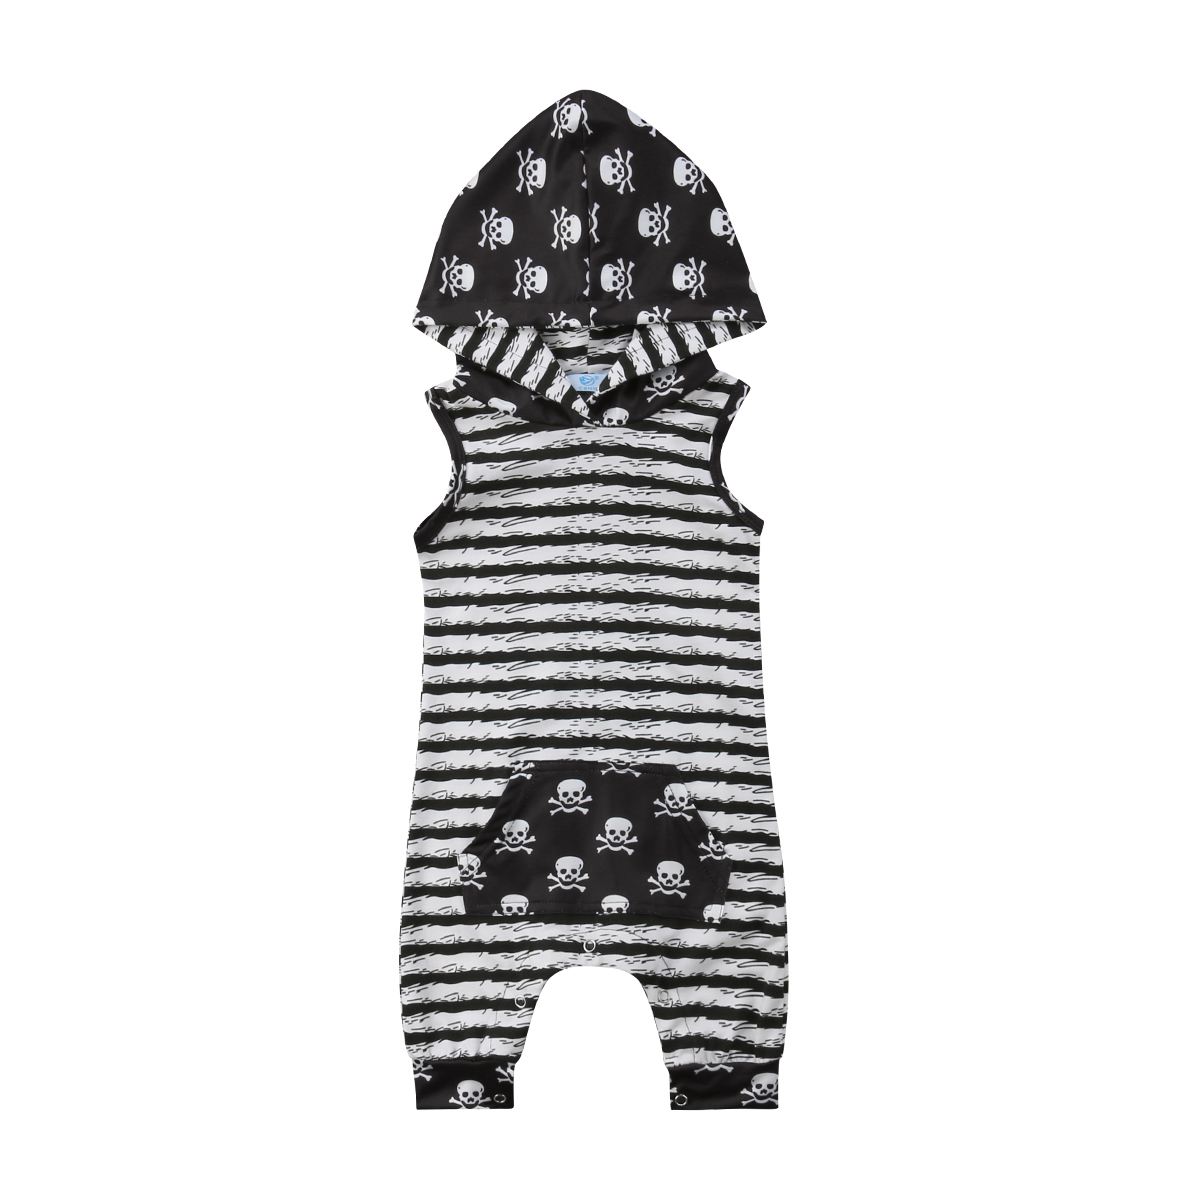 Newborn Kid Baby Boys Skull Clothes Hooded Tops   Romper   Jumpsuit Outfits Newborn Baby Cotton Stripe Skull Sleeveless Summer